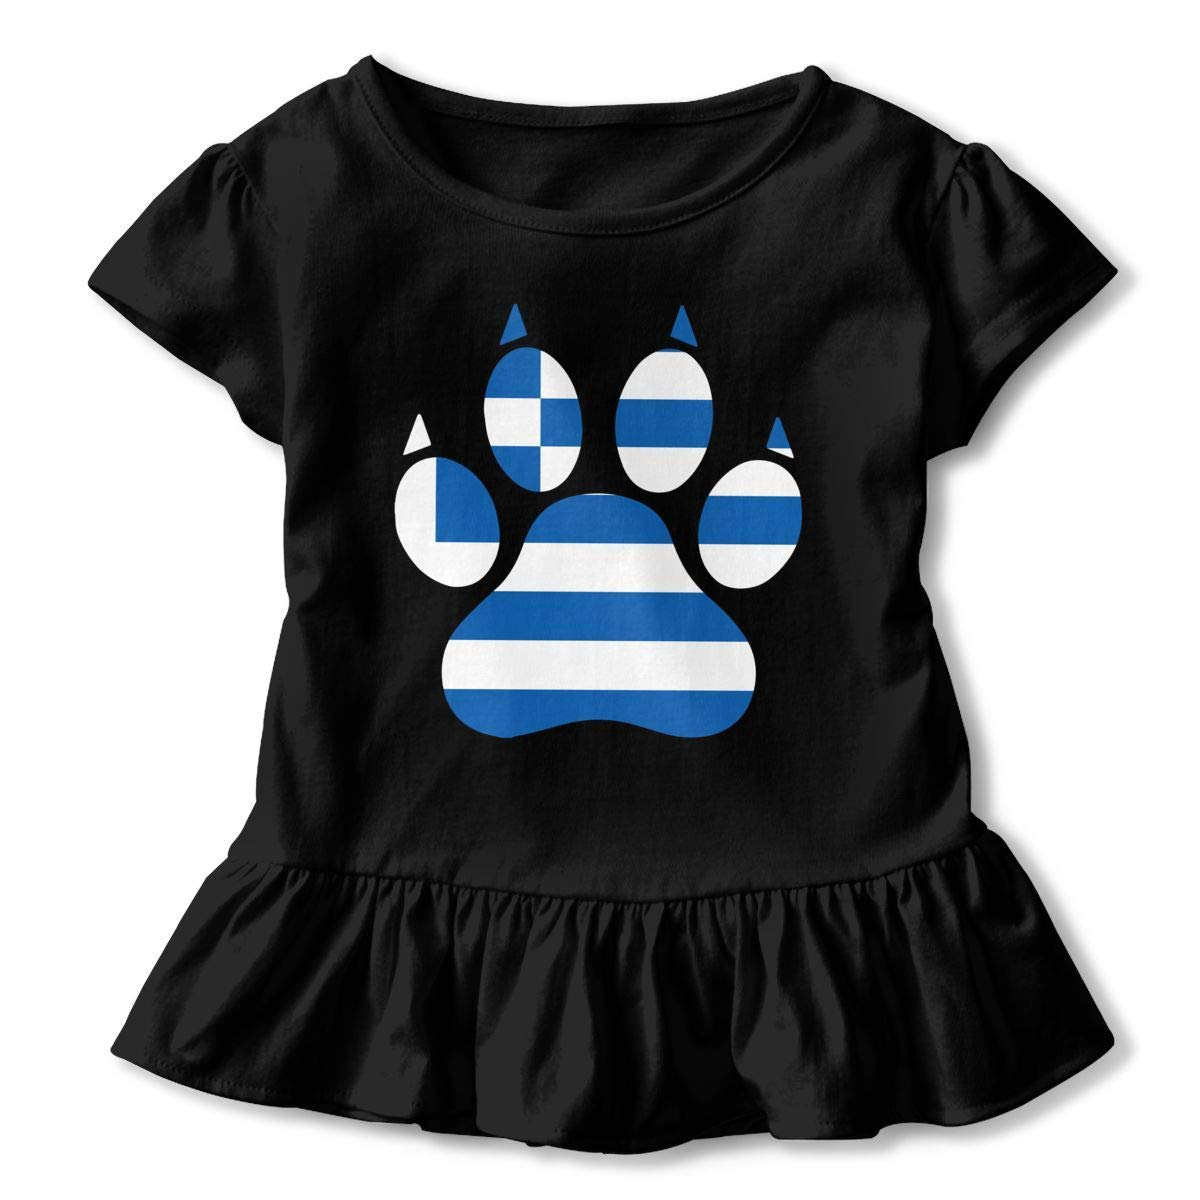 2-6T Short-Sleeve Greece Dog Paw T-Shirts for Kids Casual Blouse Clothes with Falbala